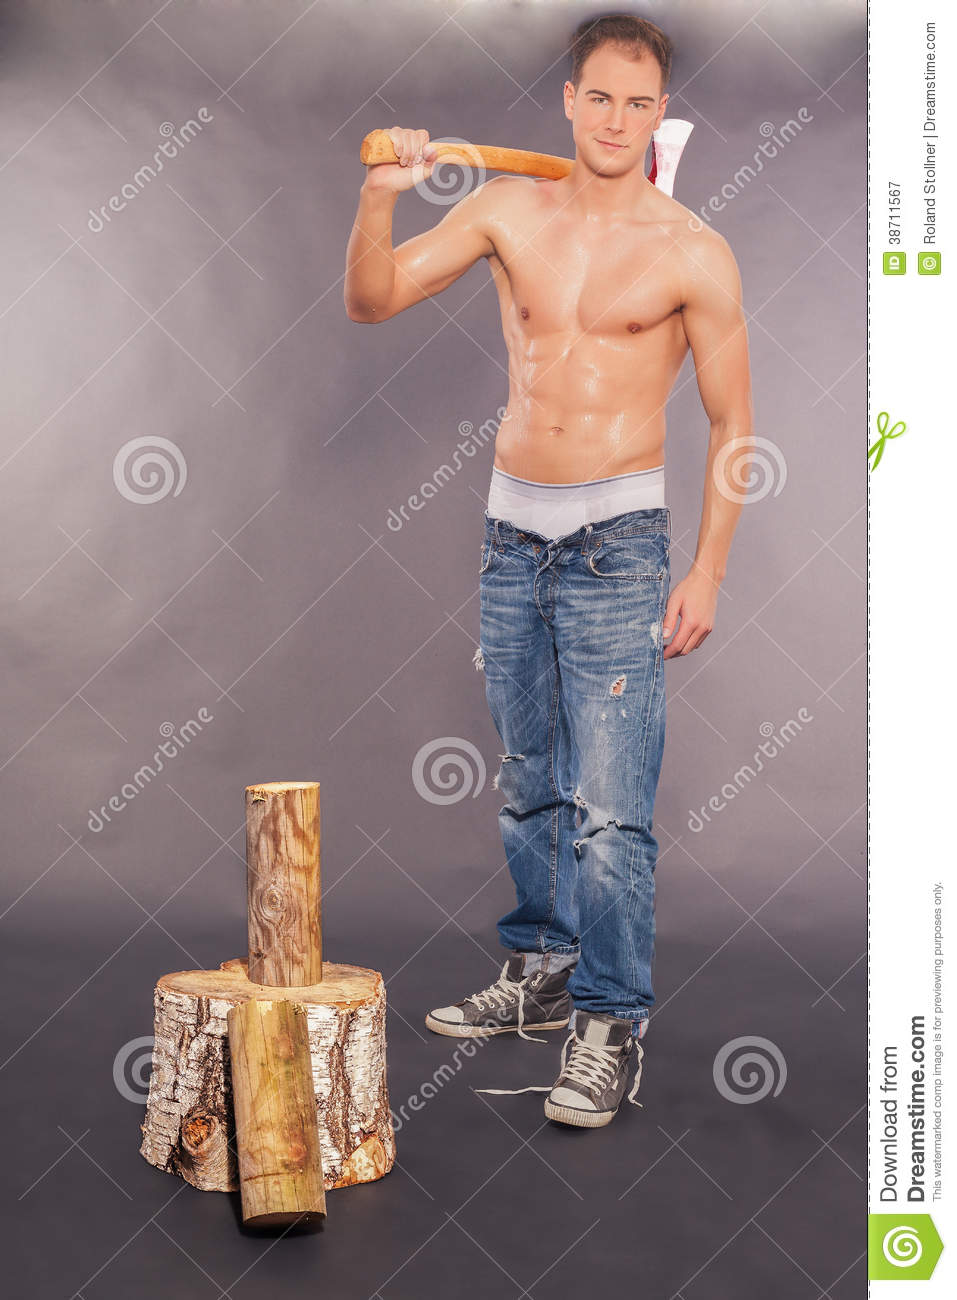 aa7500dd05c handsome muscular young man standing shirtless in jeans and sneakers  holding an axe chopping fire wood on a graduated grey studio background